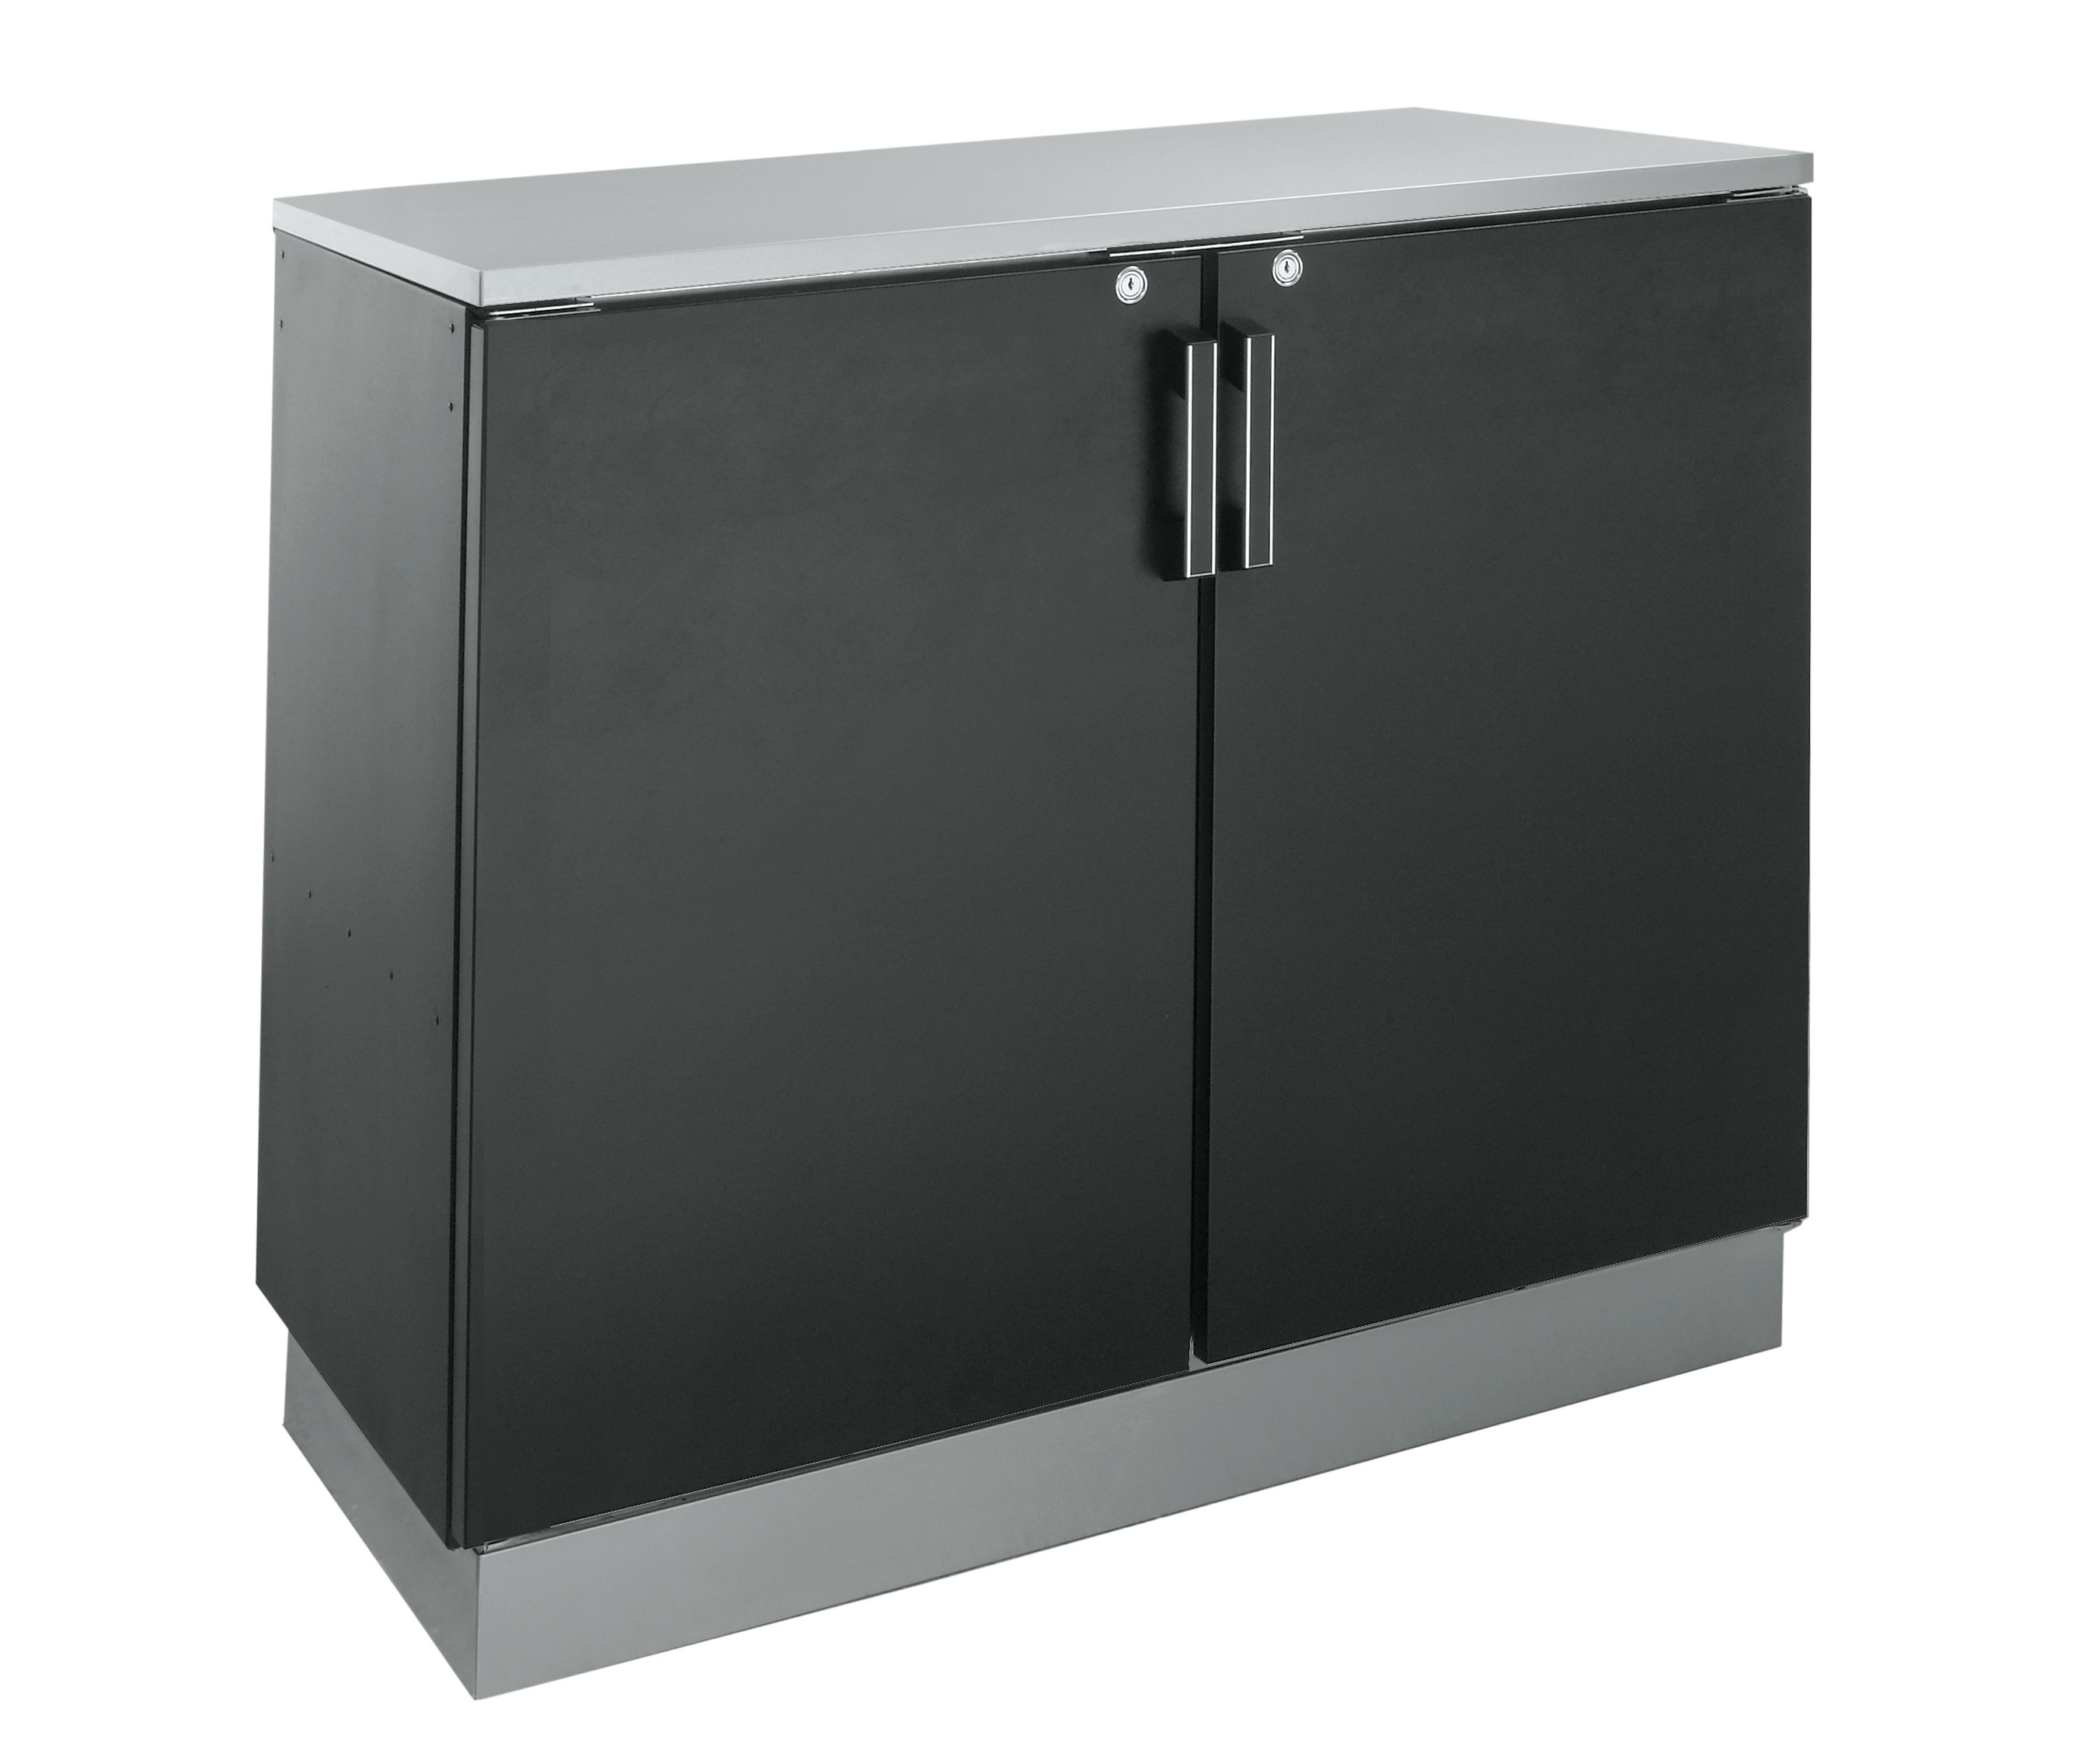 Krowne Metal BD48 back bar cabinet, non-refrigerated